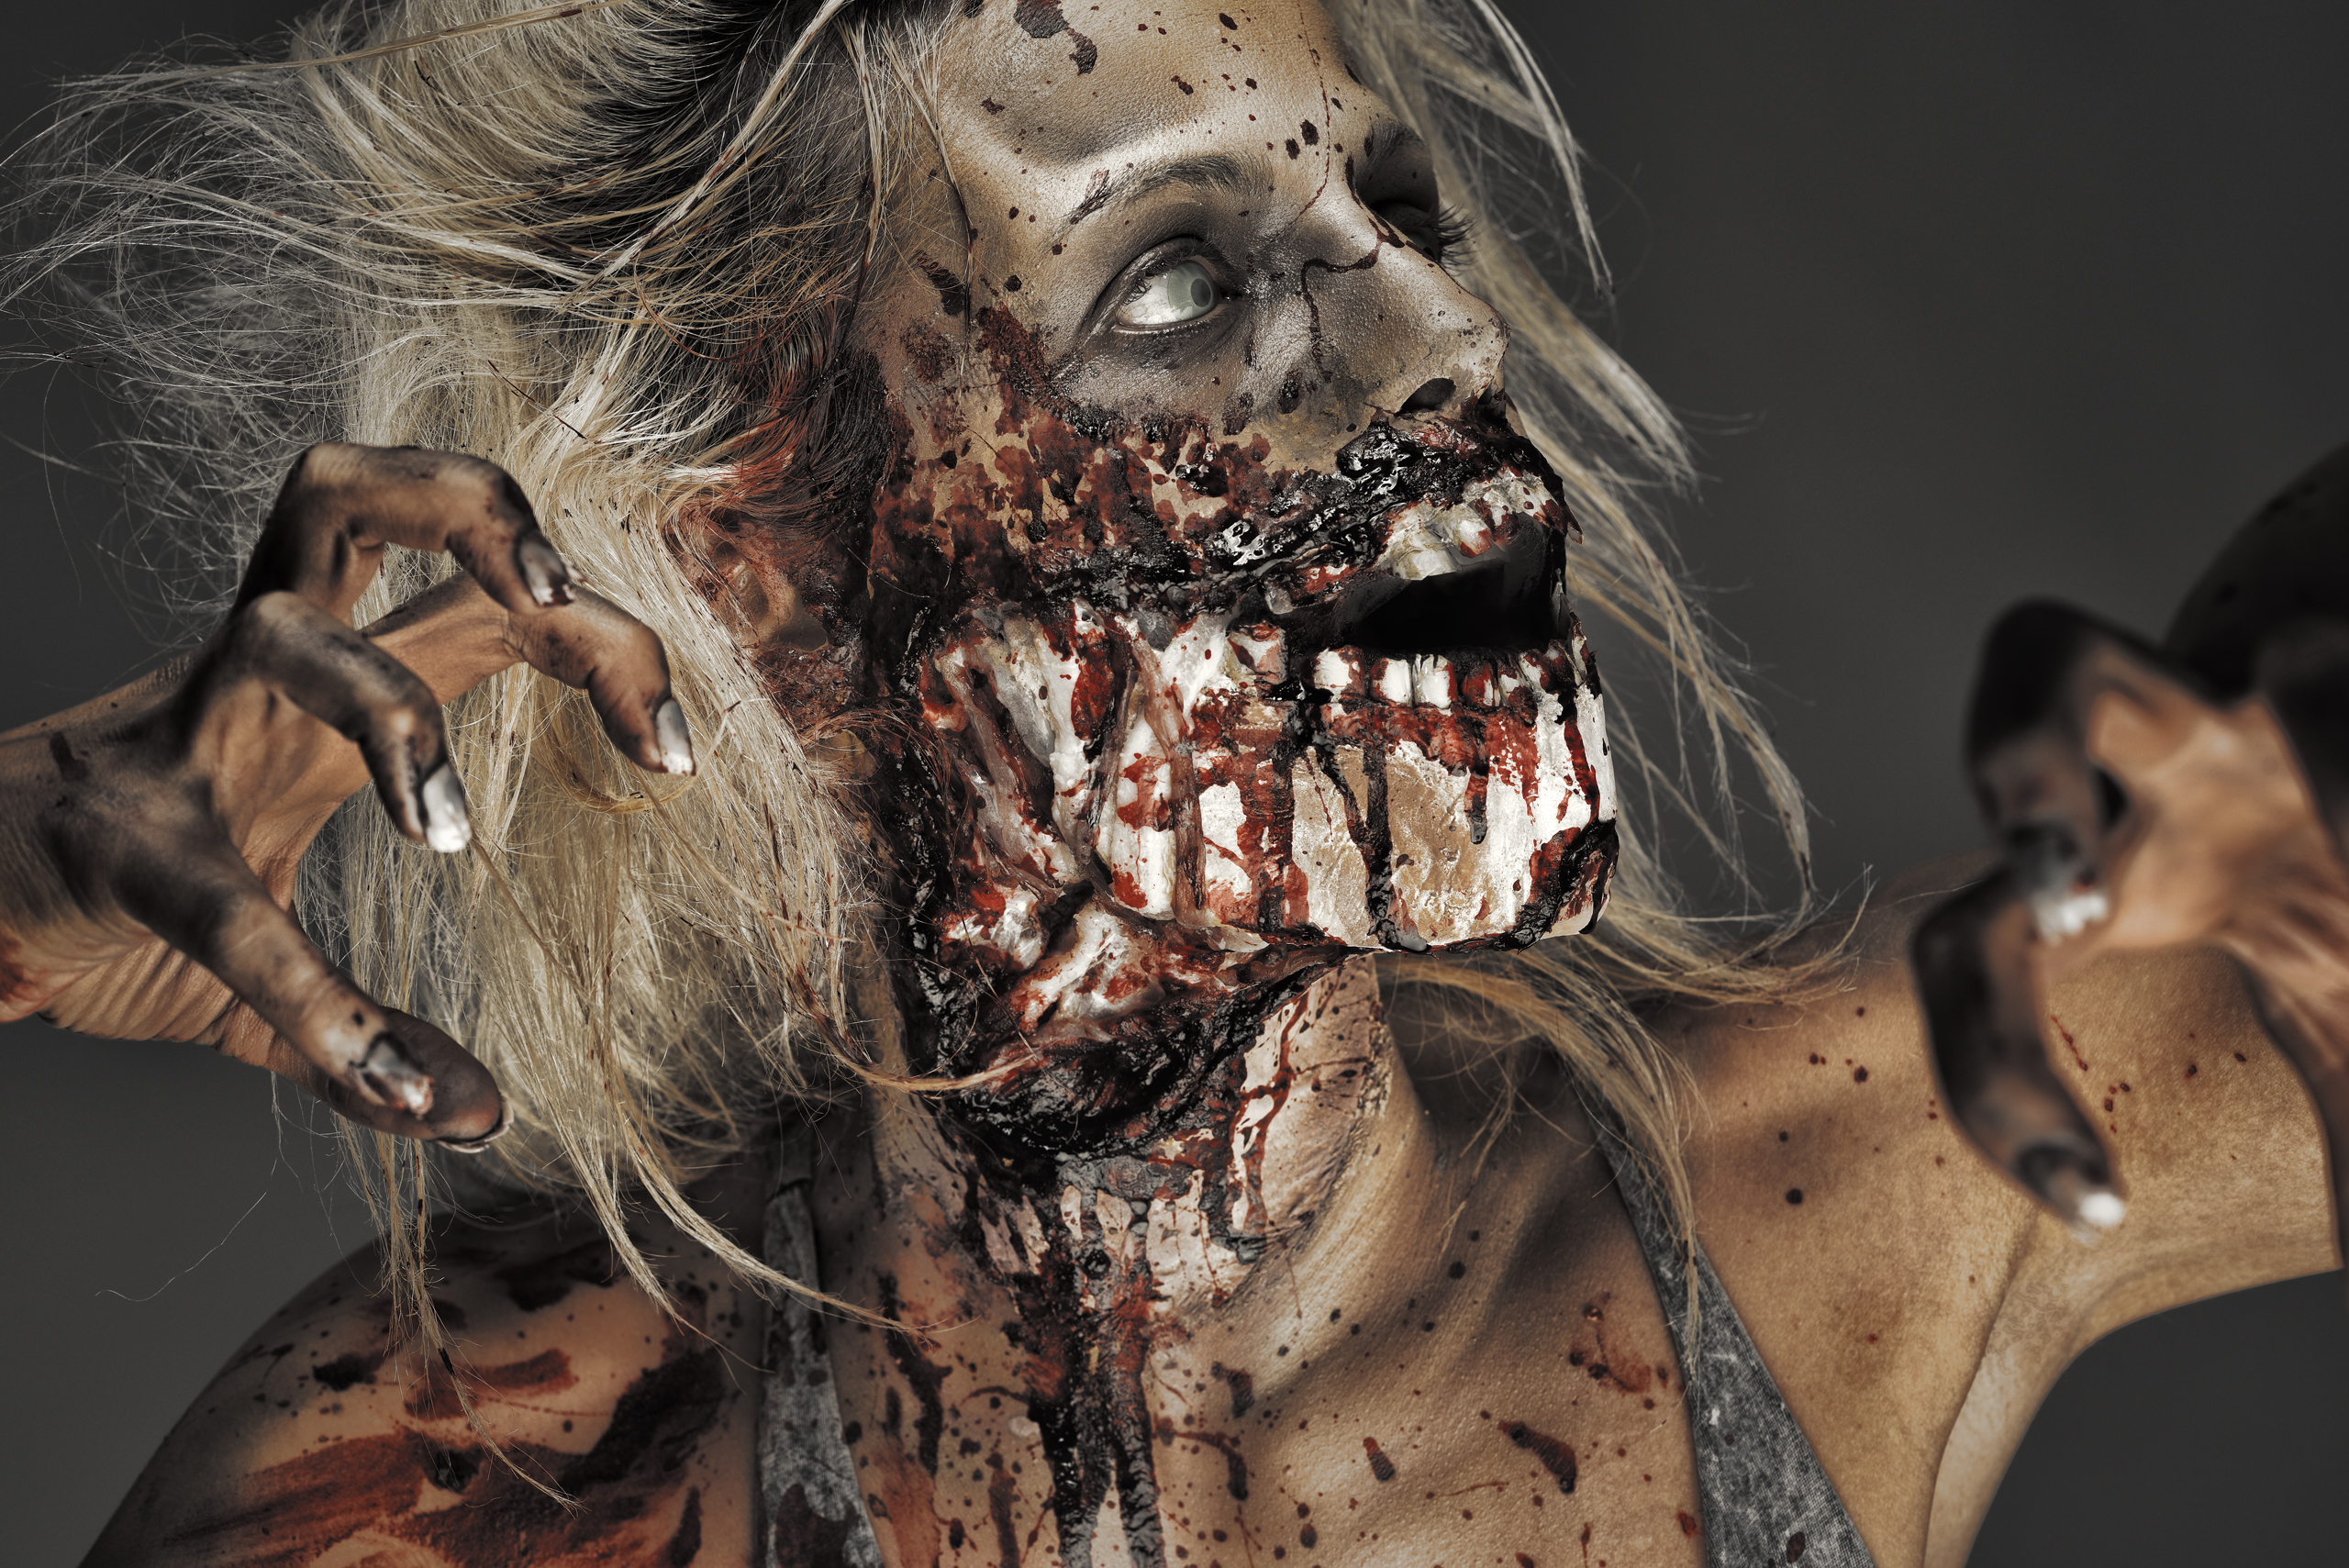 Gory Pictures 57